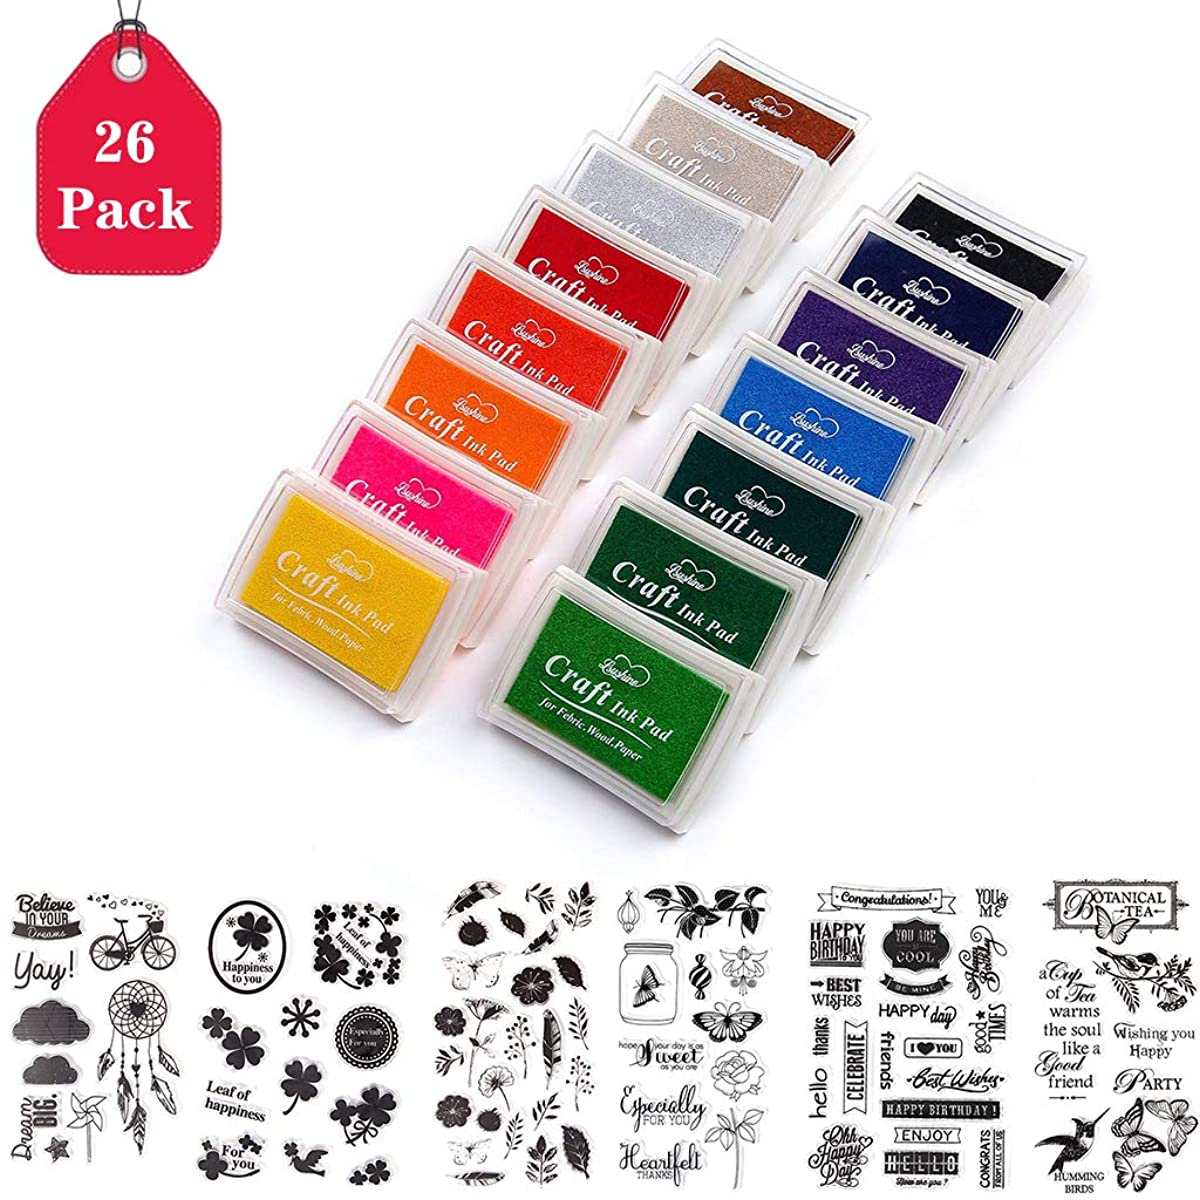 26 Pack Ink Pads, Amycute Finger Ink Pads for Kids & 6 Sheets Silicone Clear Stamps, Craft Scrapbooking Stamp Pads for Rubber Stamps, Paper, Fabric